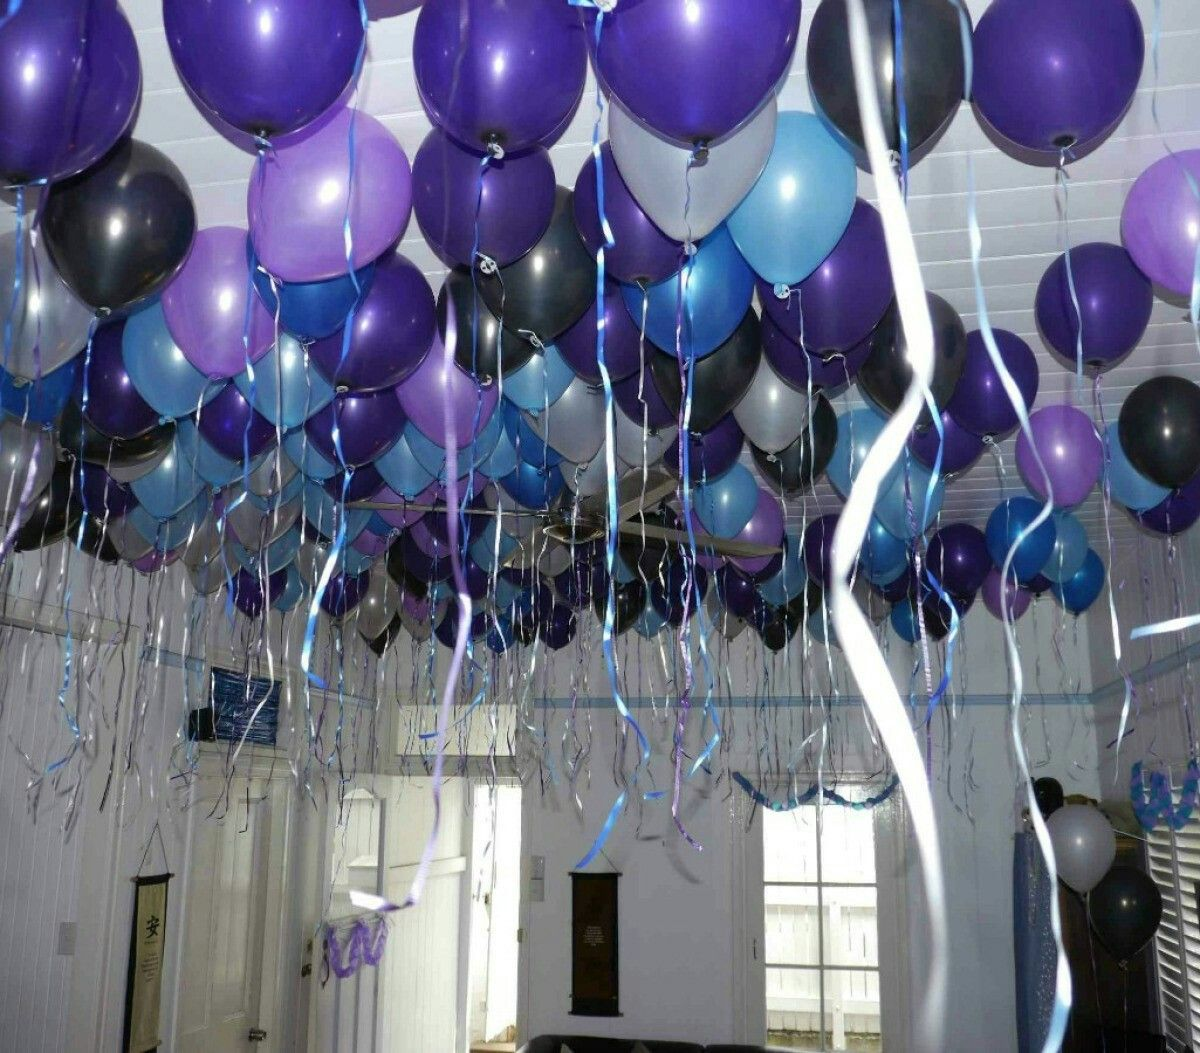 Pin by Heather White on party in 2020 Floating balloons